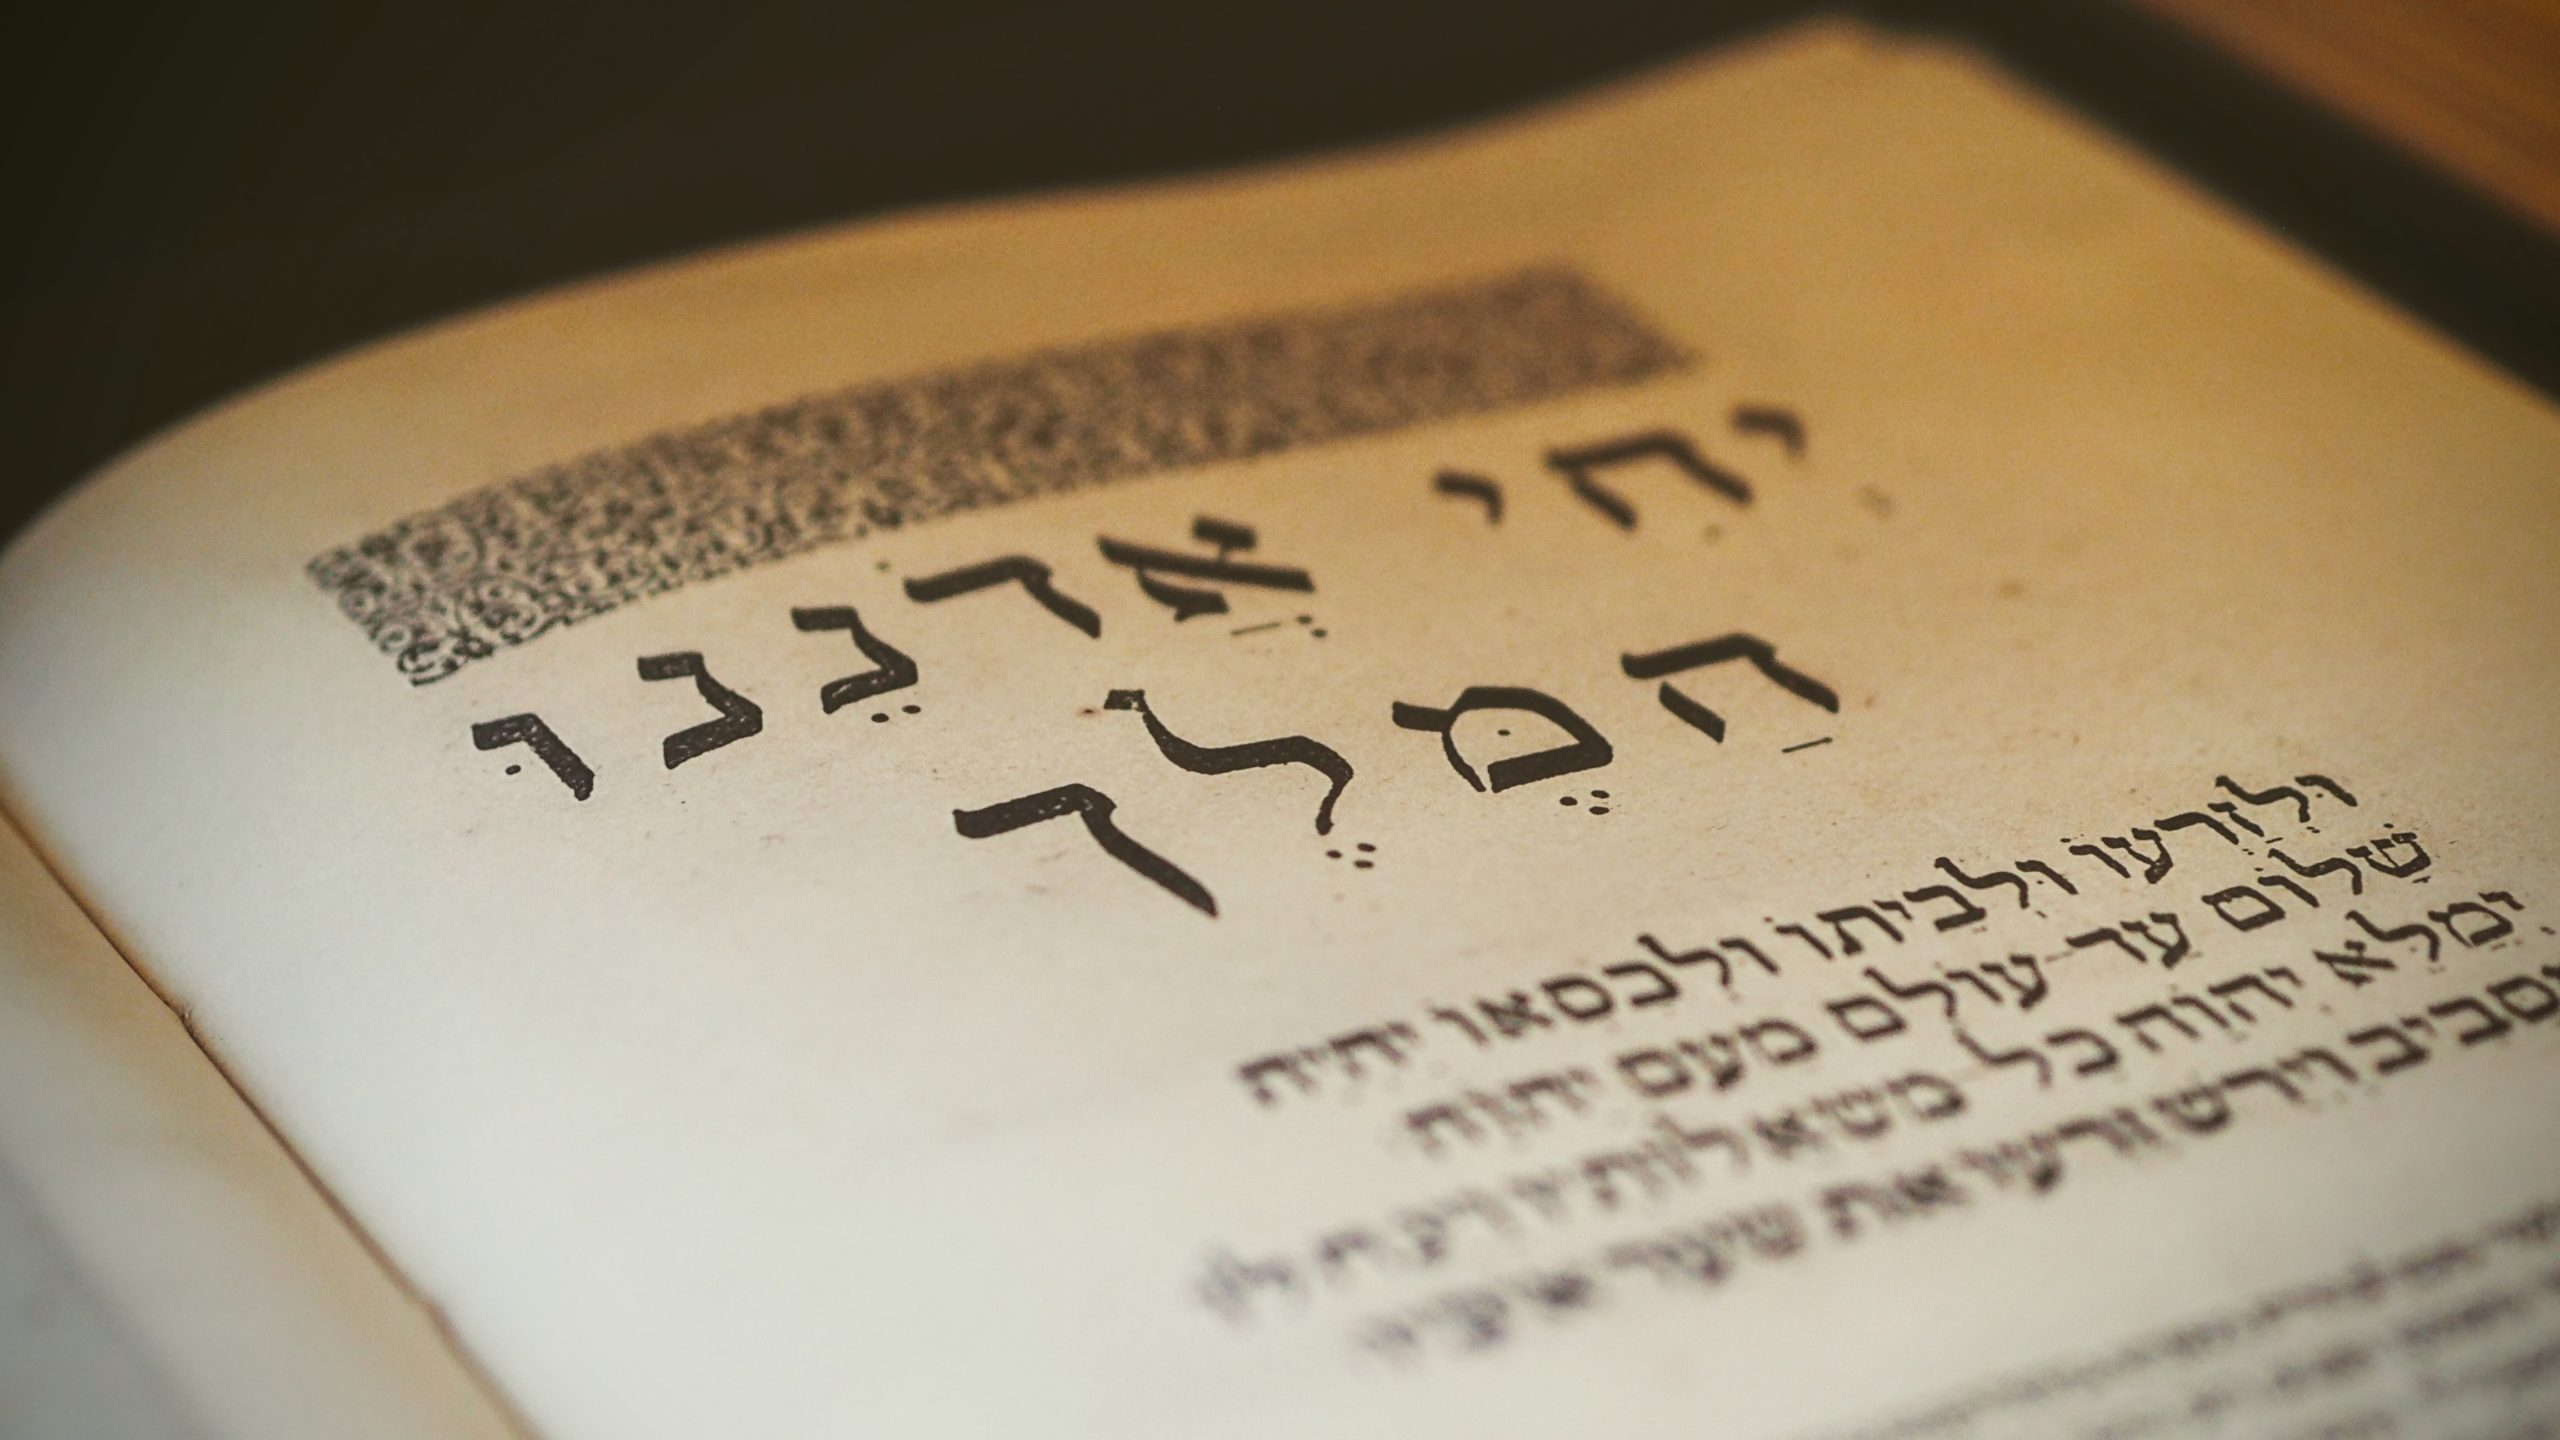 11 Things You Probably Didn't Know About the Hebrew Language